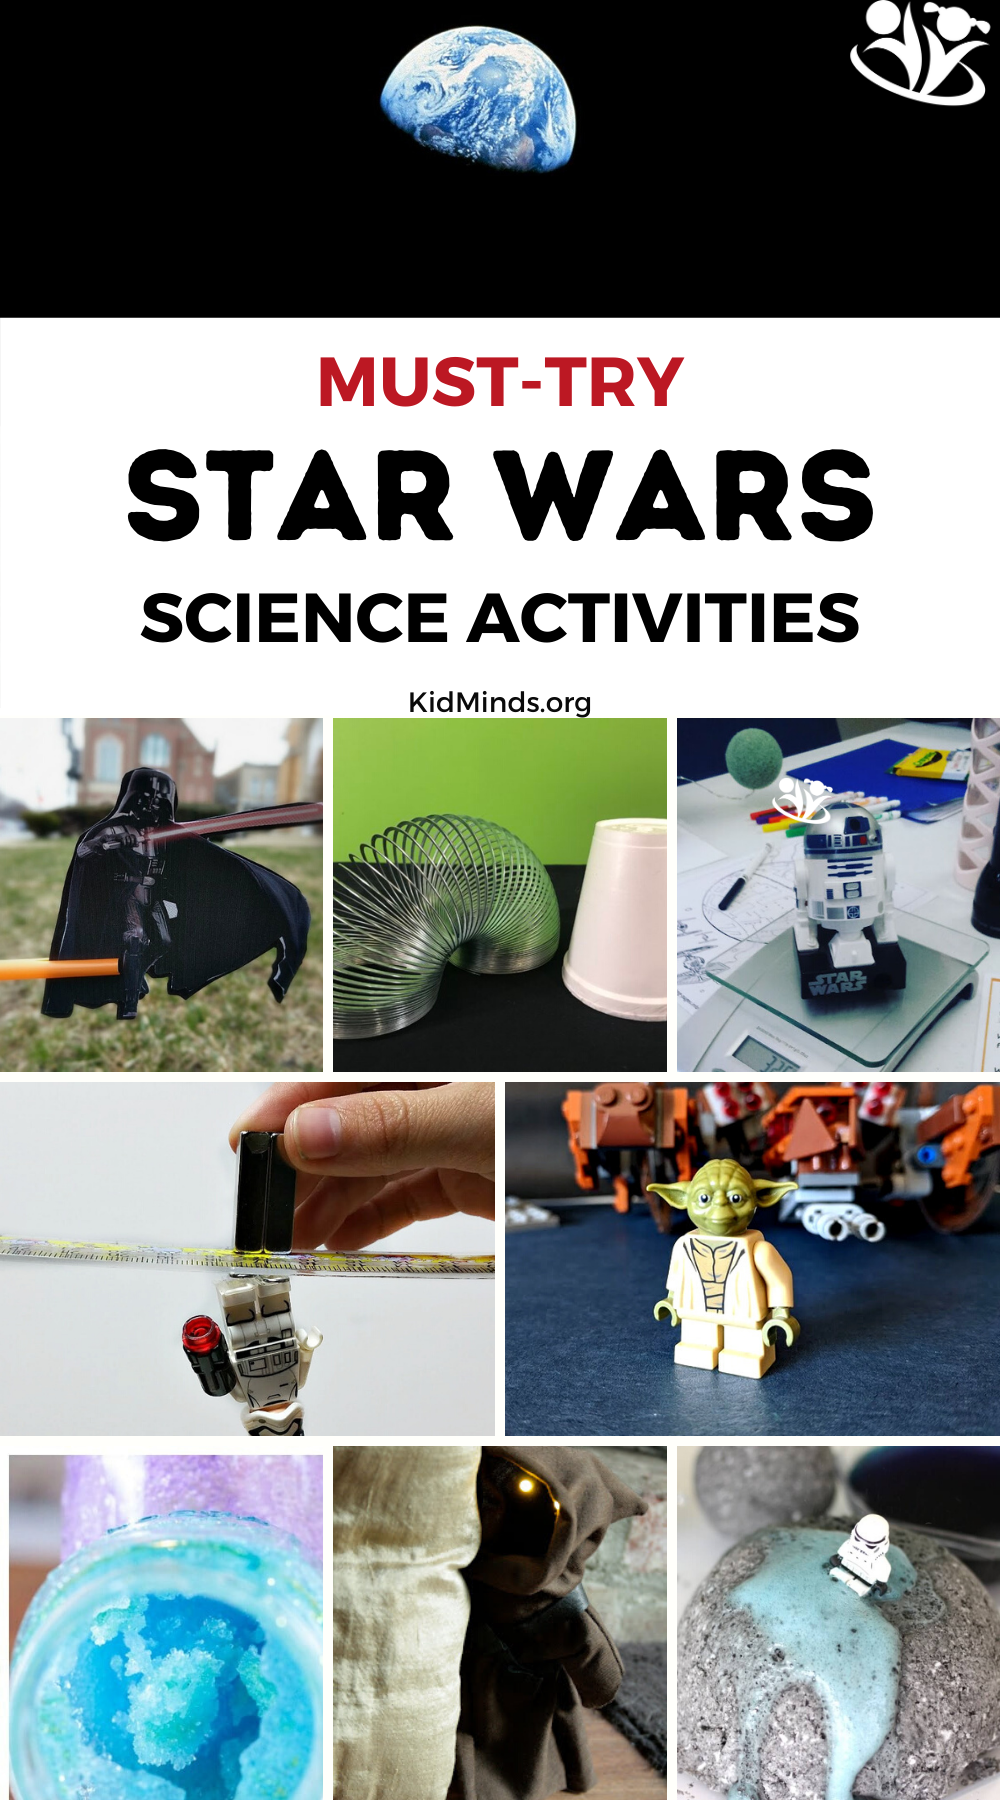 This is a collection of our favorite Star Wars activities. There's something for every little Jedi in the universe. #STARWARS #science #kidsactivities #kidminds #laughingkidslearn #LEGO #STEAM